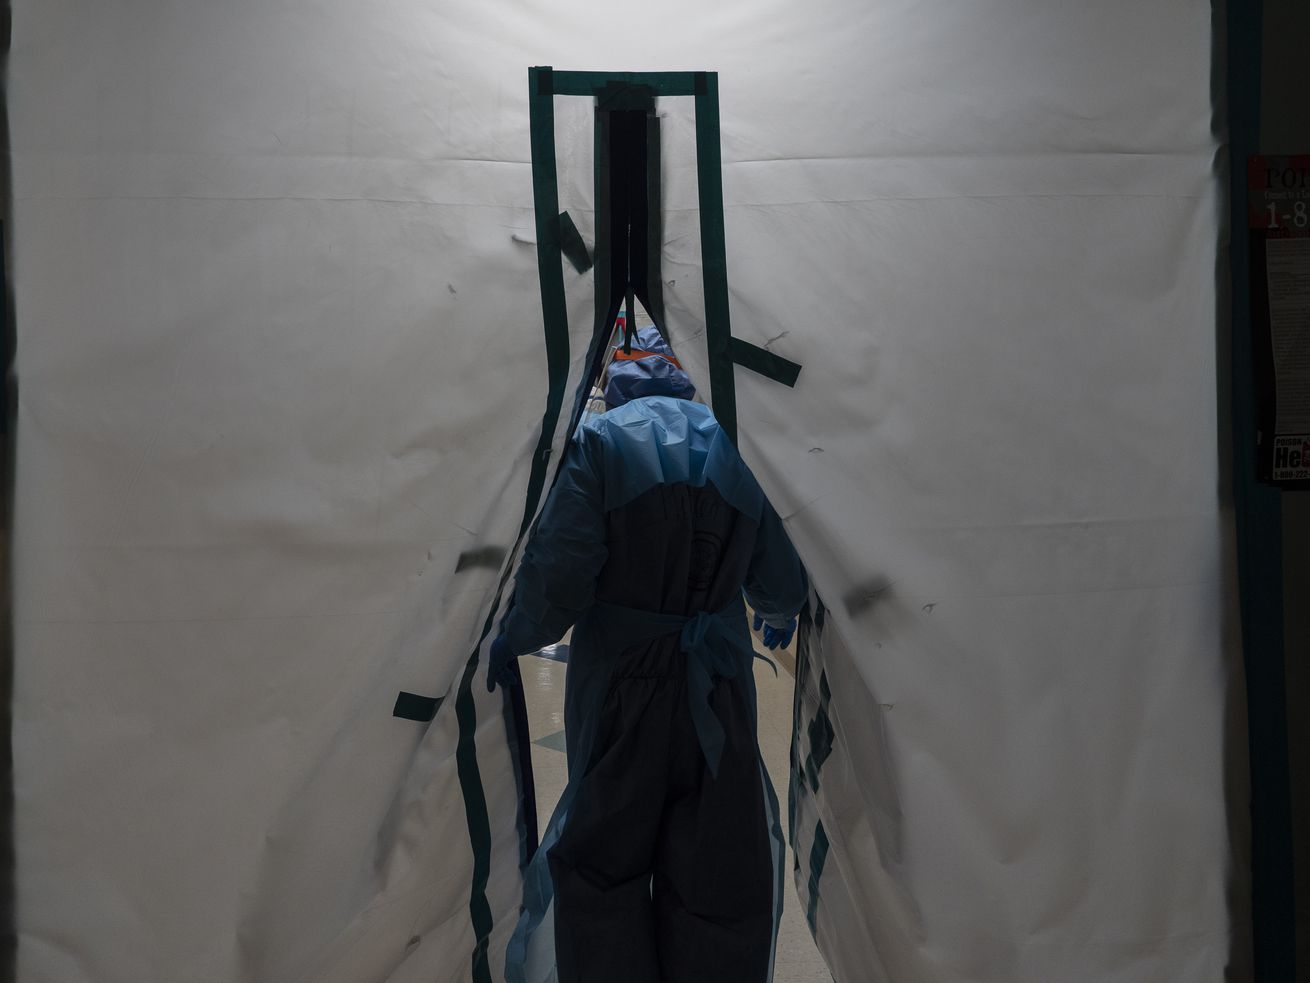 A hospital worker walks through a tented opening.